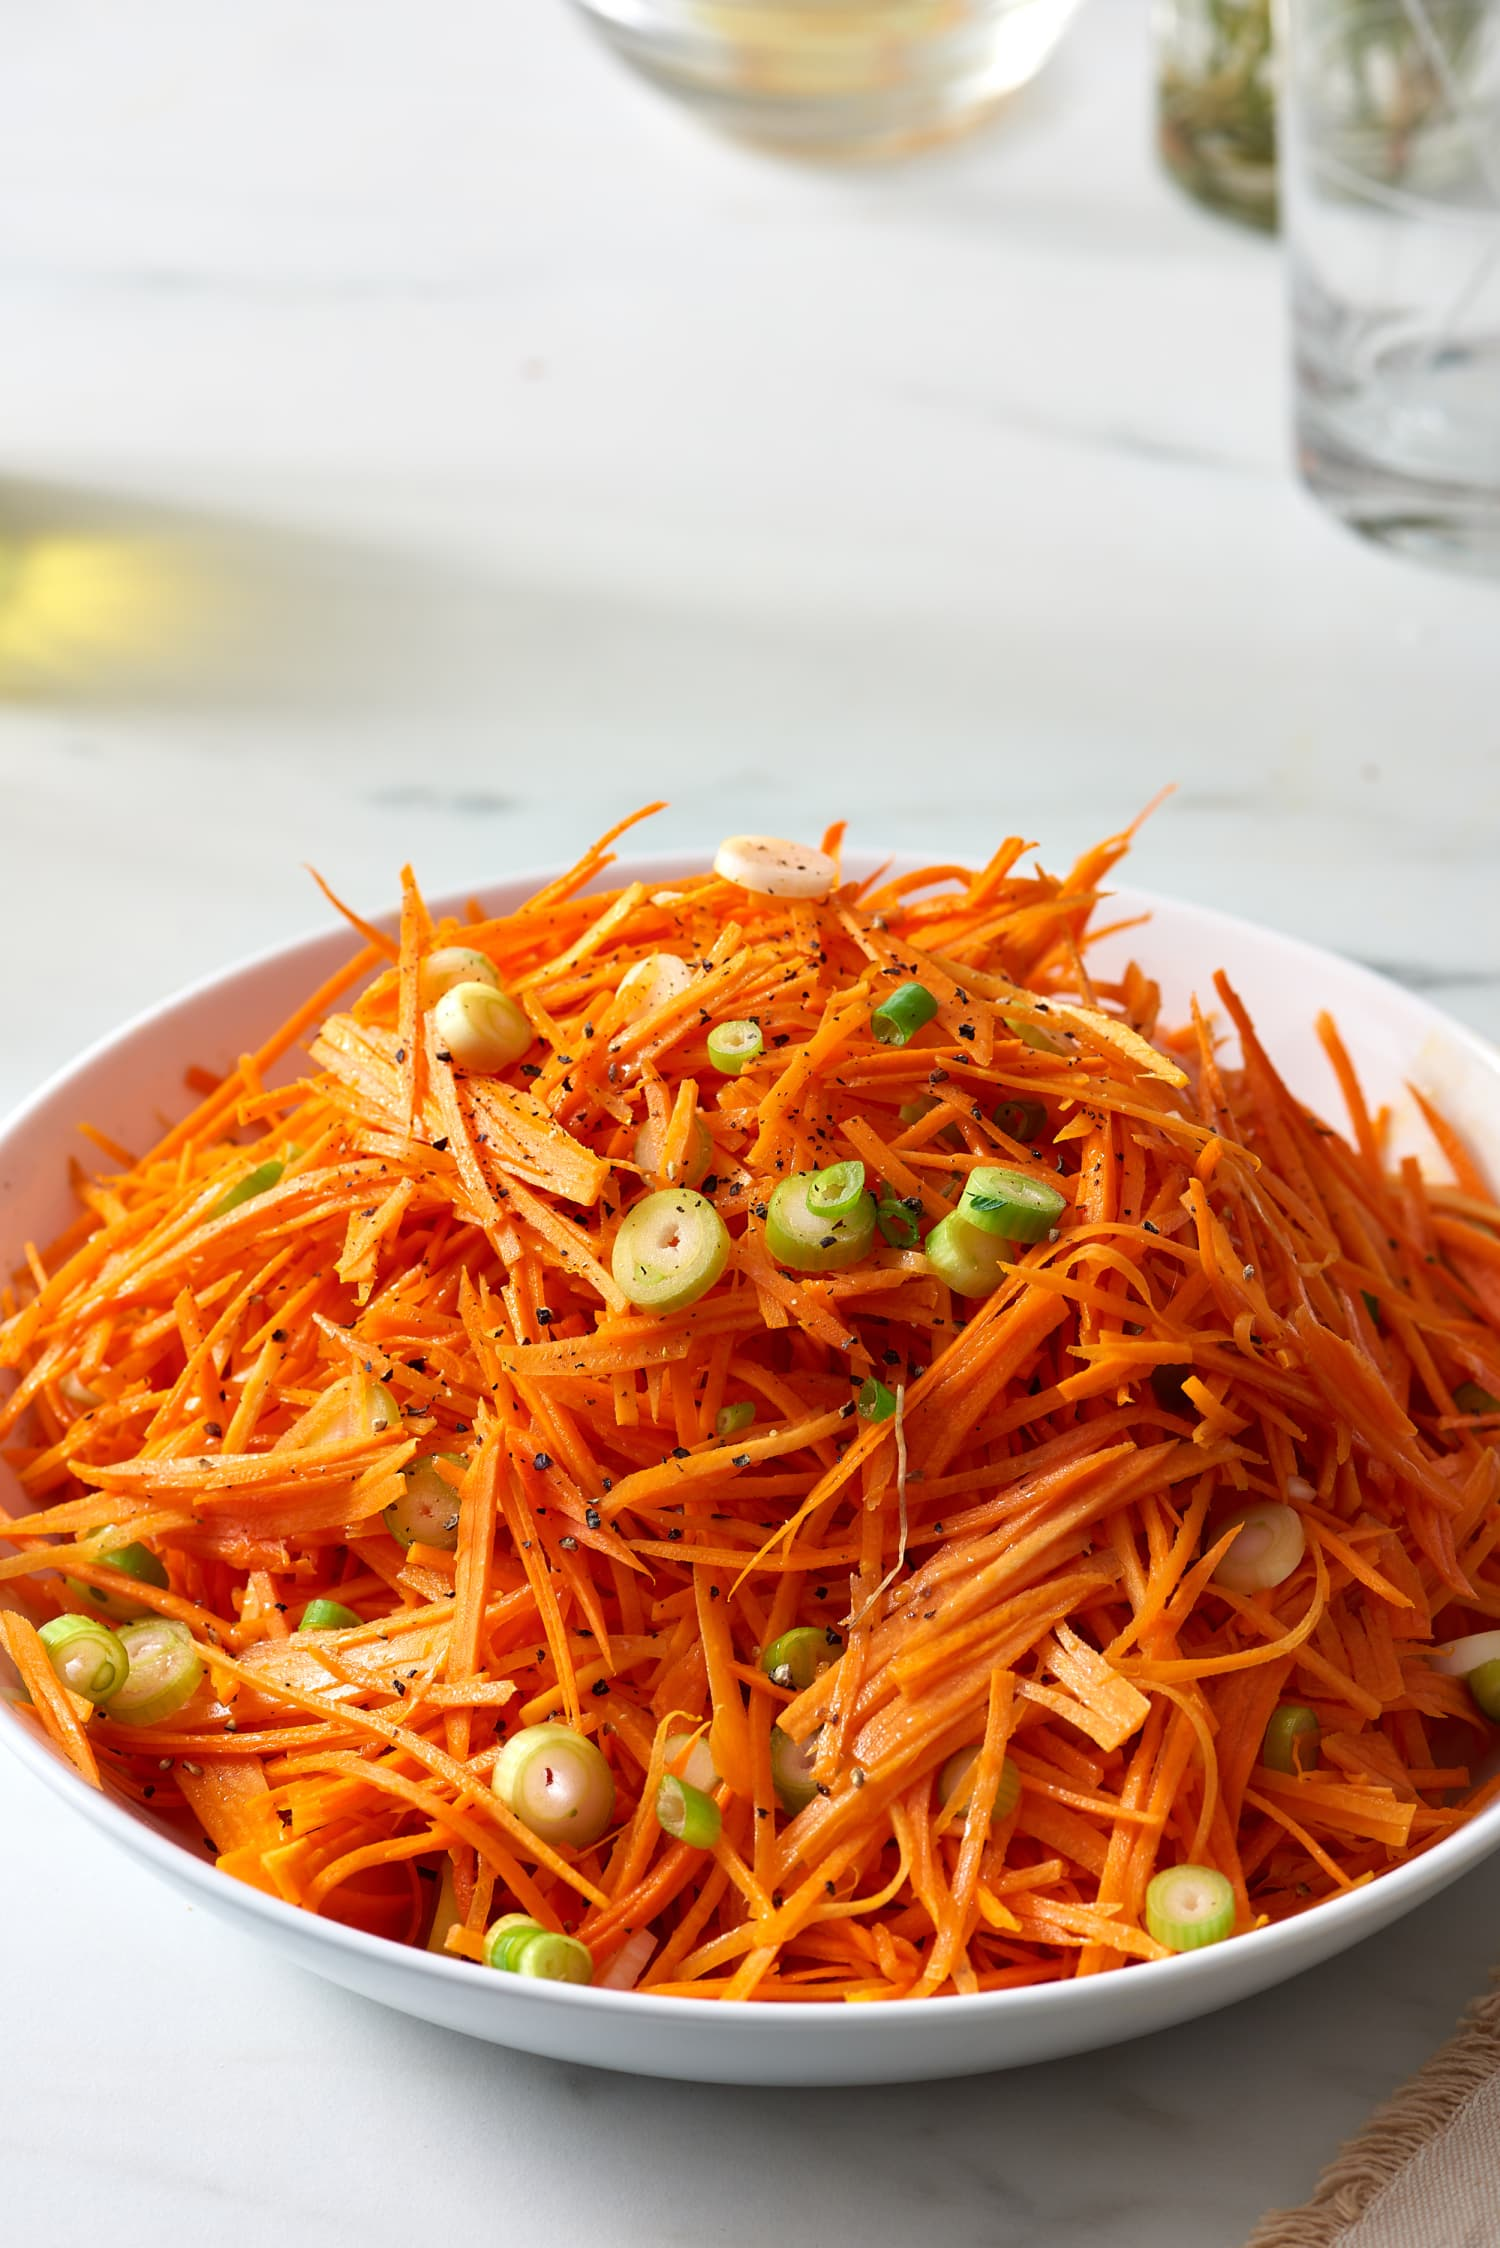 Recipe: Tangy Carrot Slaw